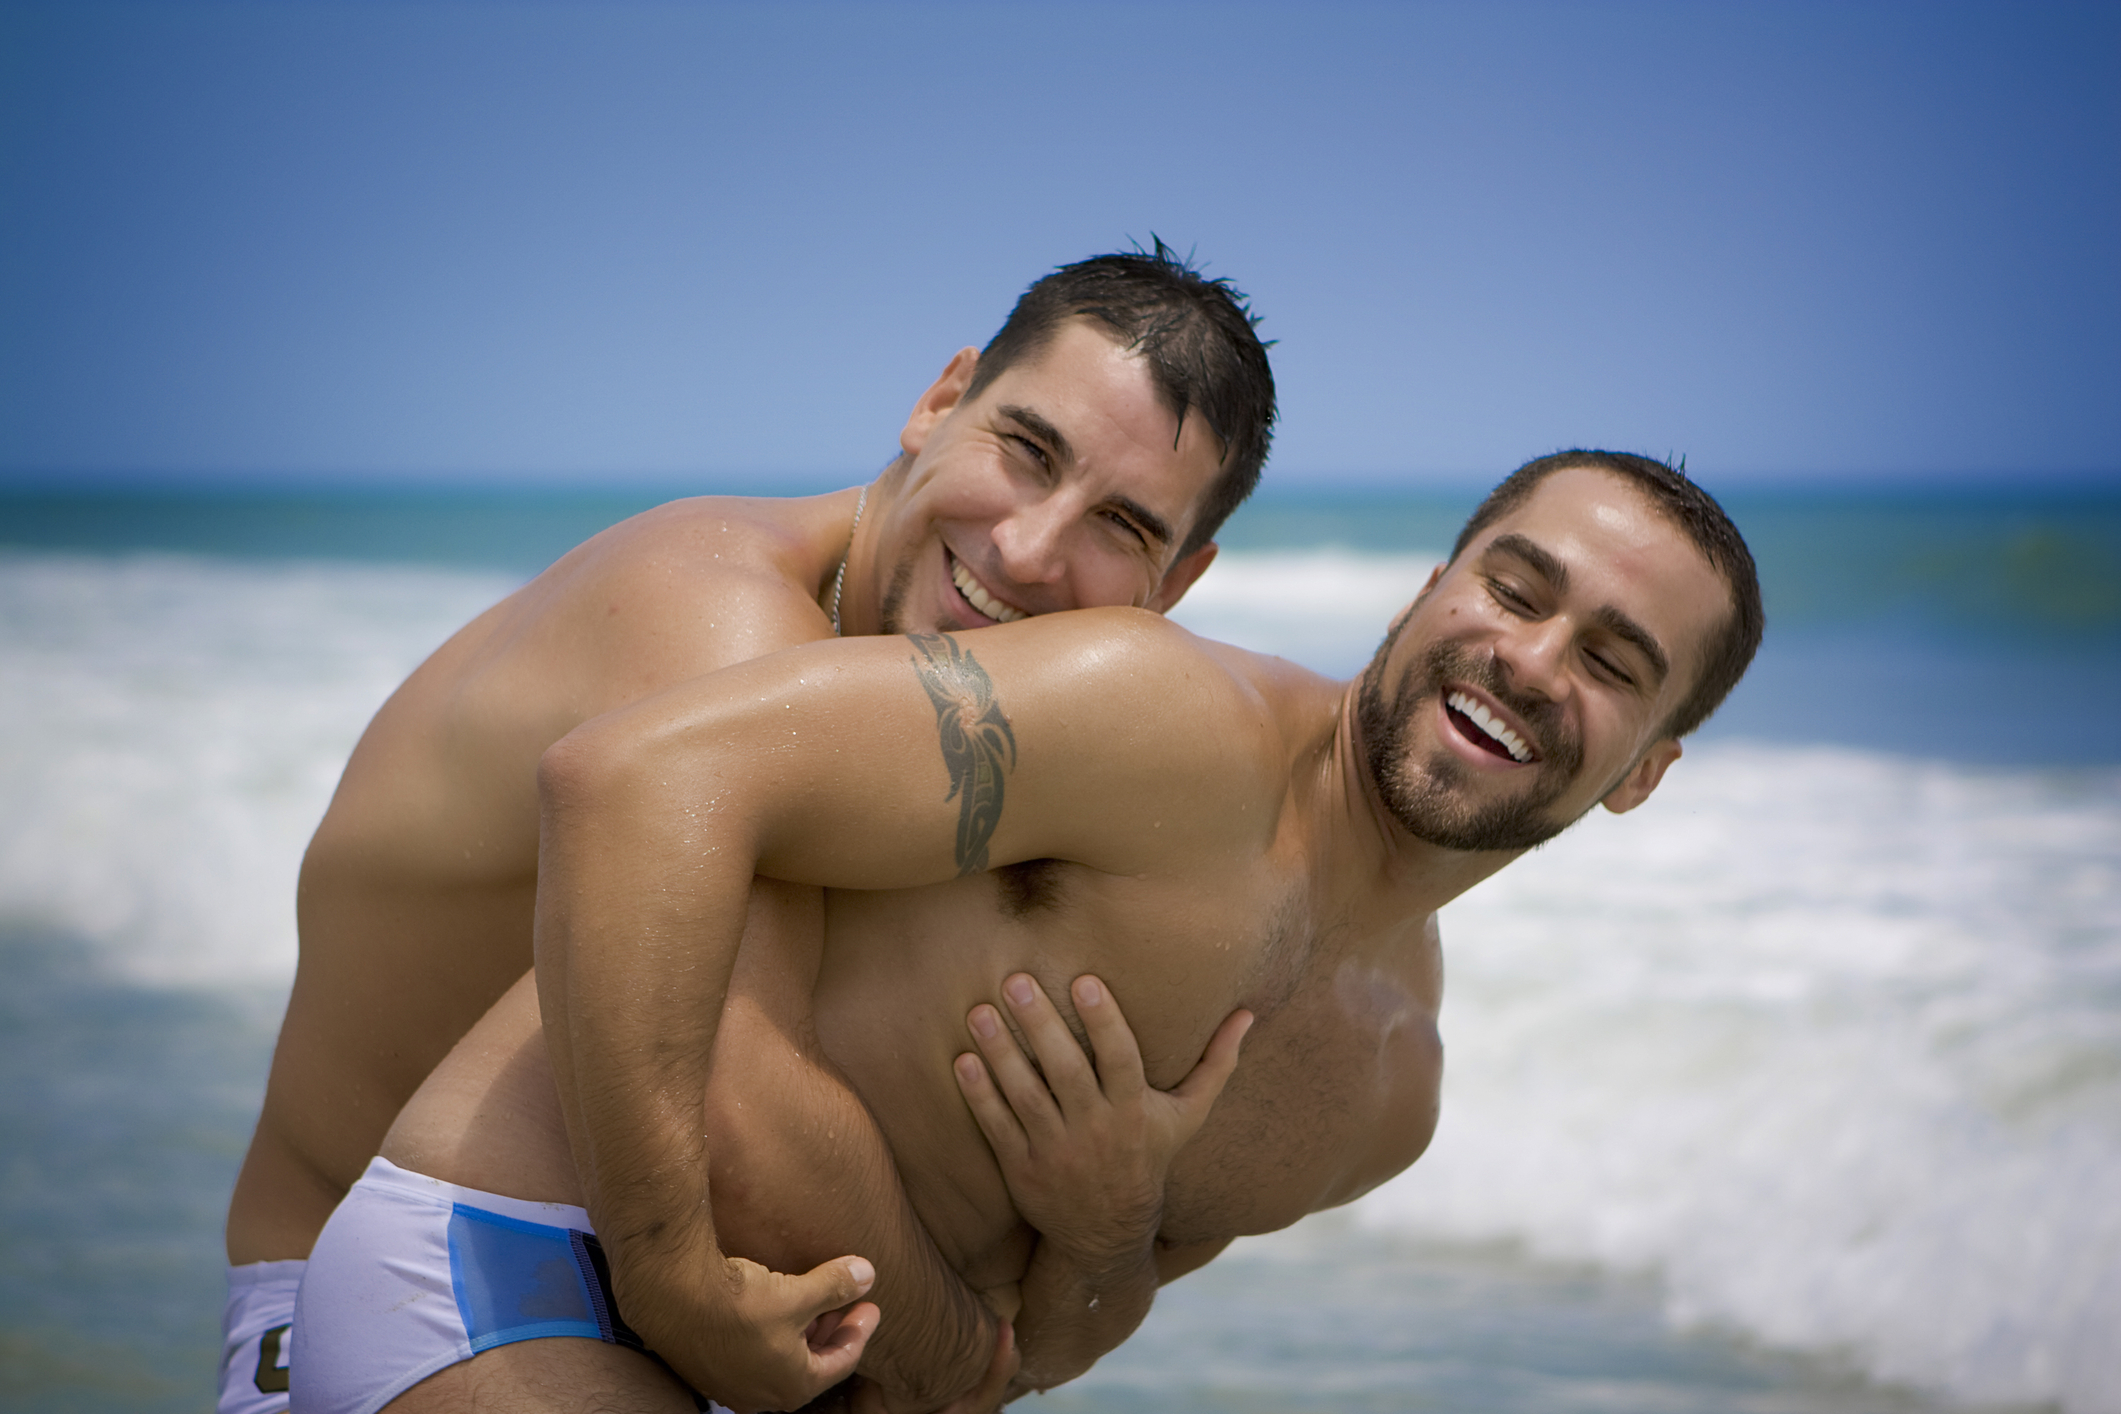 top 10 gay dating websites Gouda